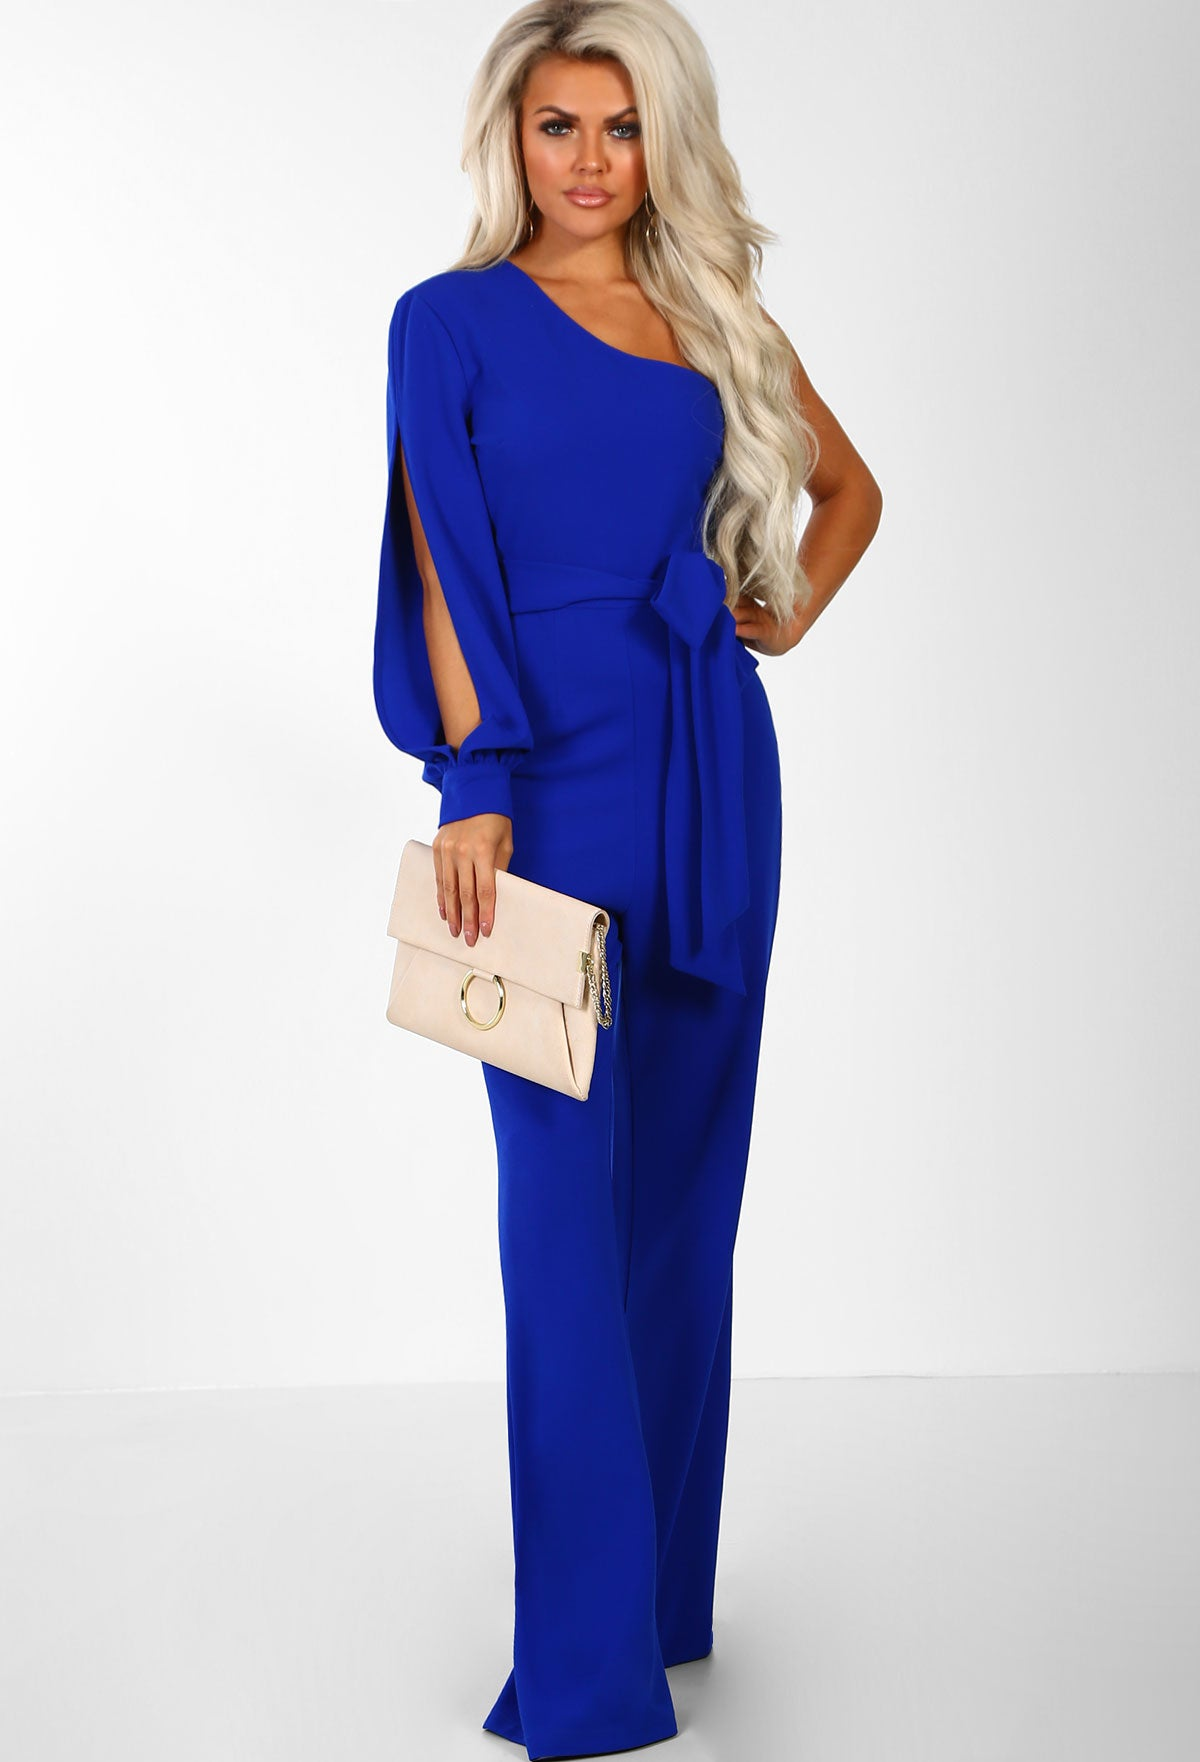 82ded1b29c26 Dark Side Cobalt Blue One Shoulder Wide Leg Jumpsuit – Pink Boutique UK